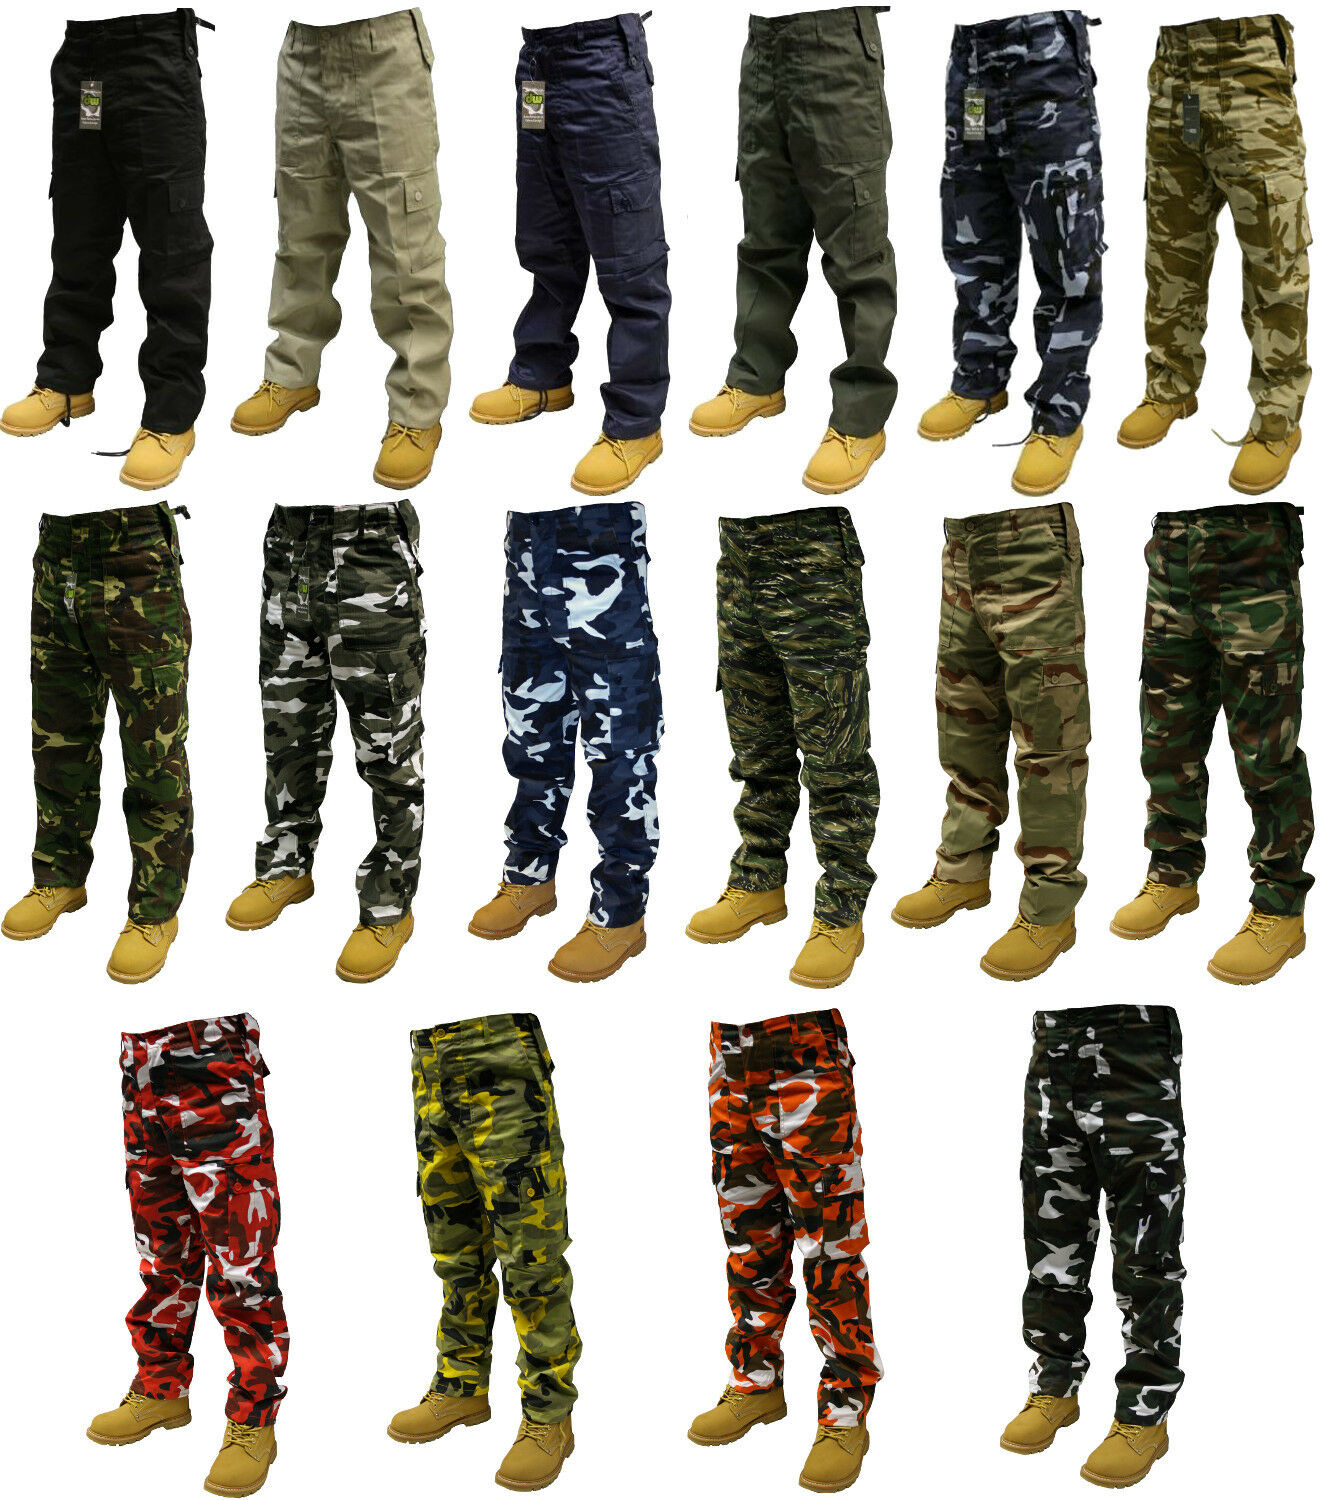 Army cargo camo combat military trousers pants 30 50 for Combat portent 30 18